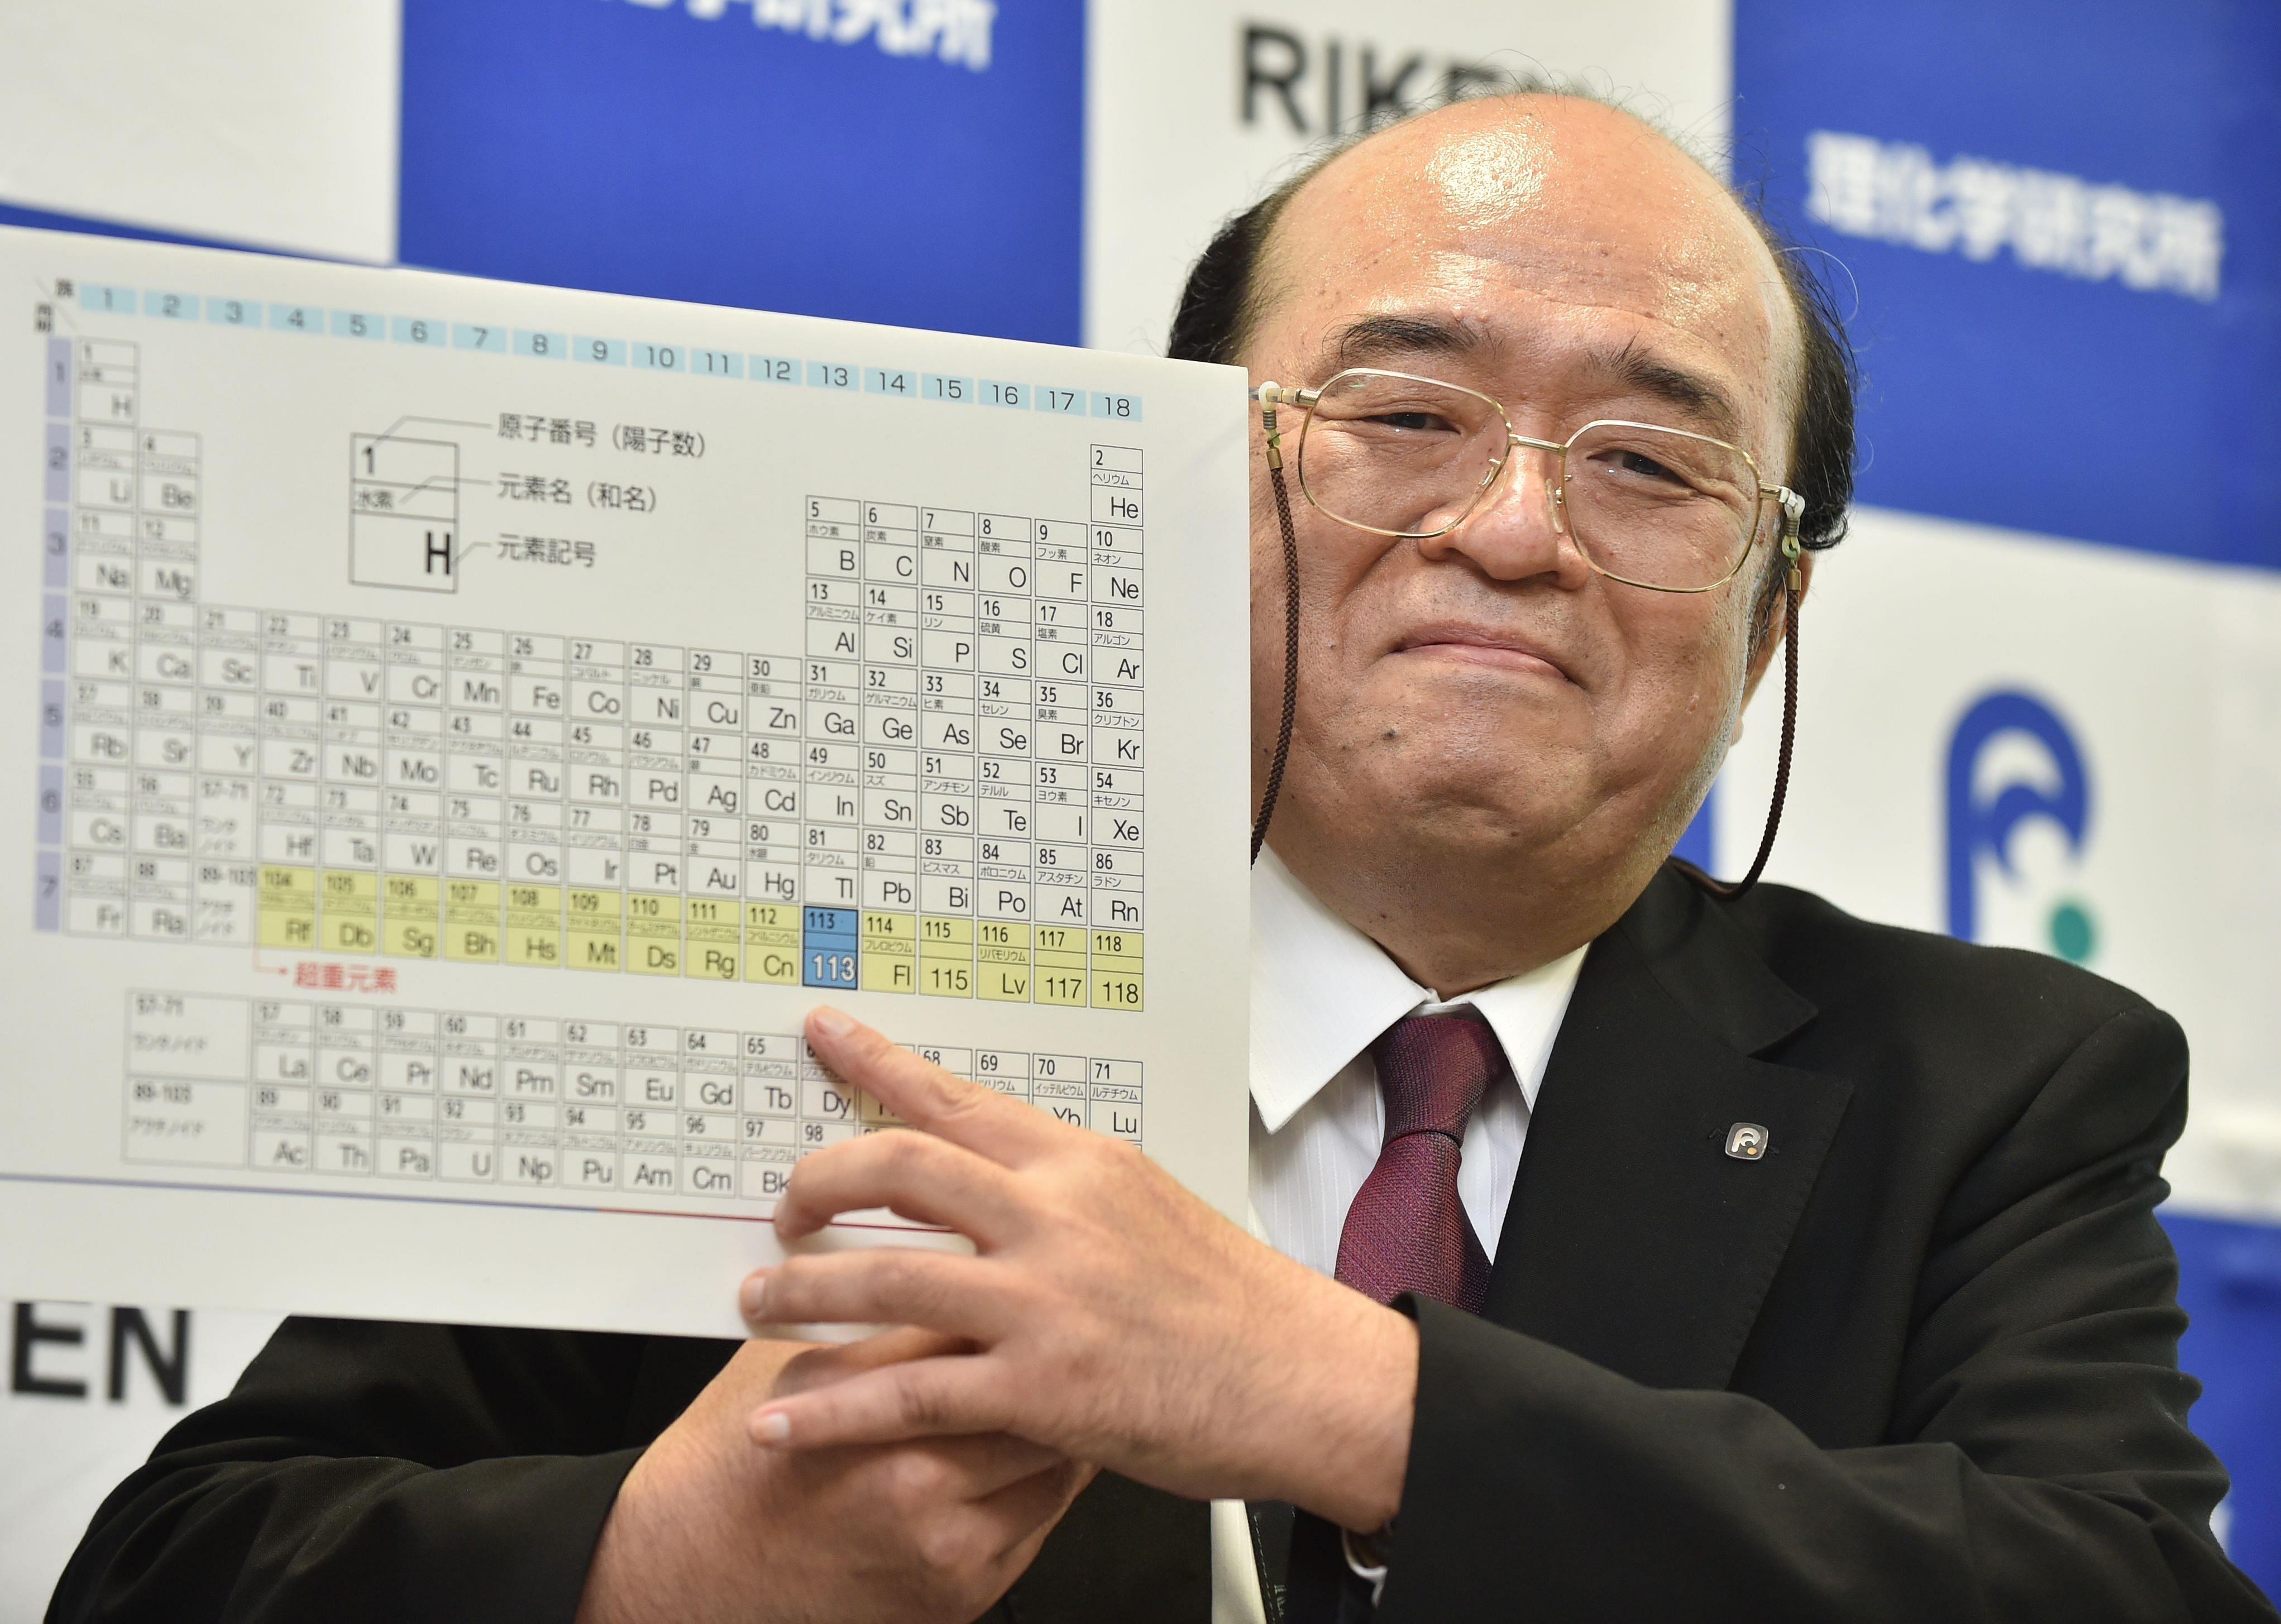 Four new elements added to periodic table 5 things about the professor kosuke morita leader of the riken institute team pointing out element 113 on the periodic table during a press conference photo afp urtaz Images